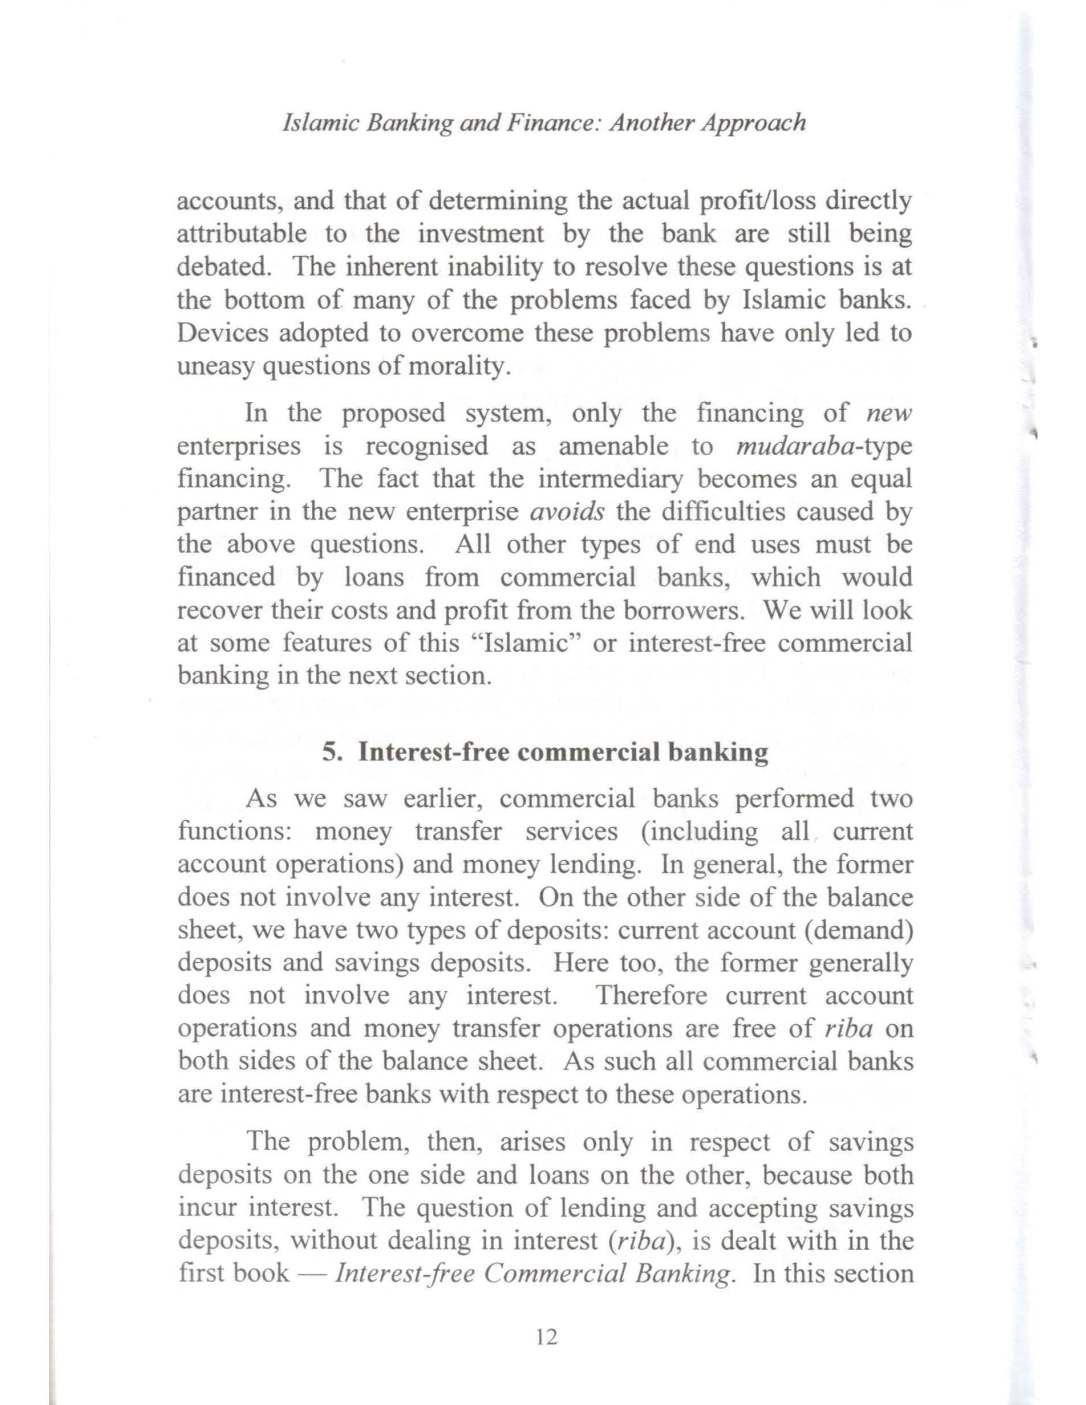 Islamic Banking and Finance - Another Approach_Page_13